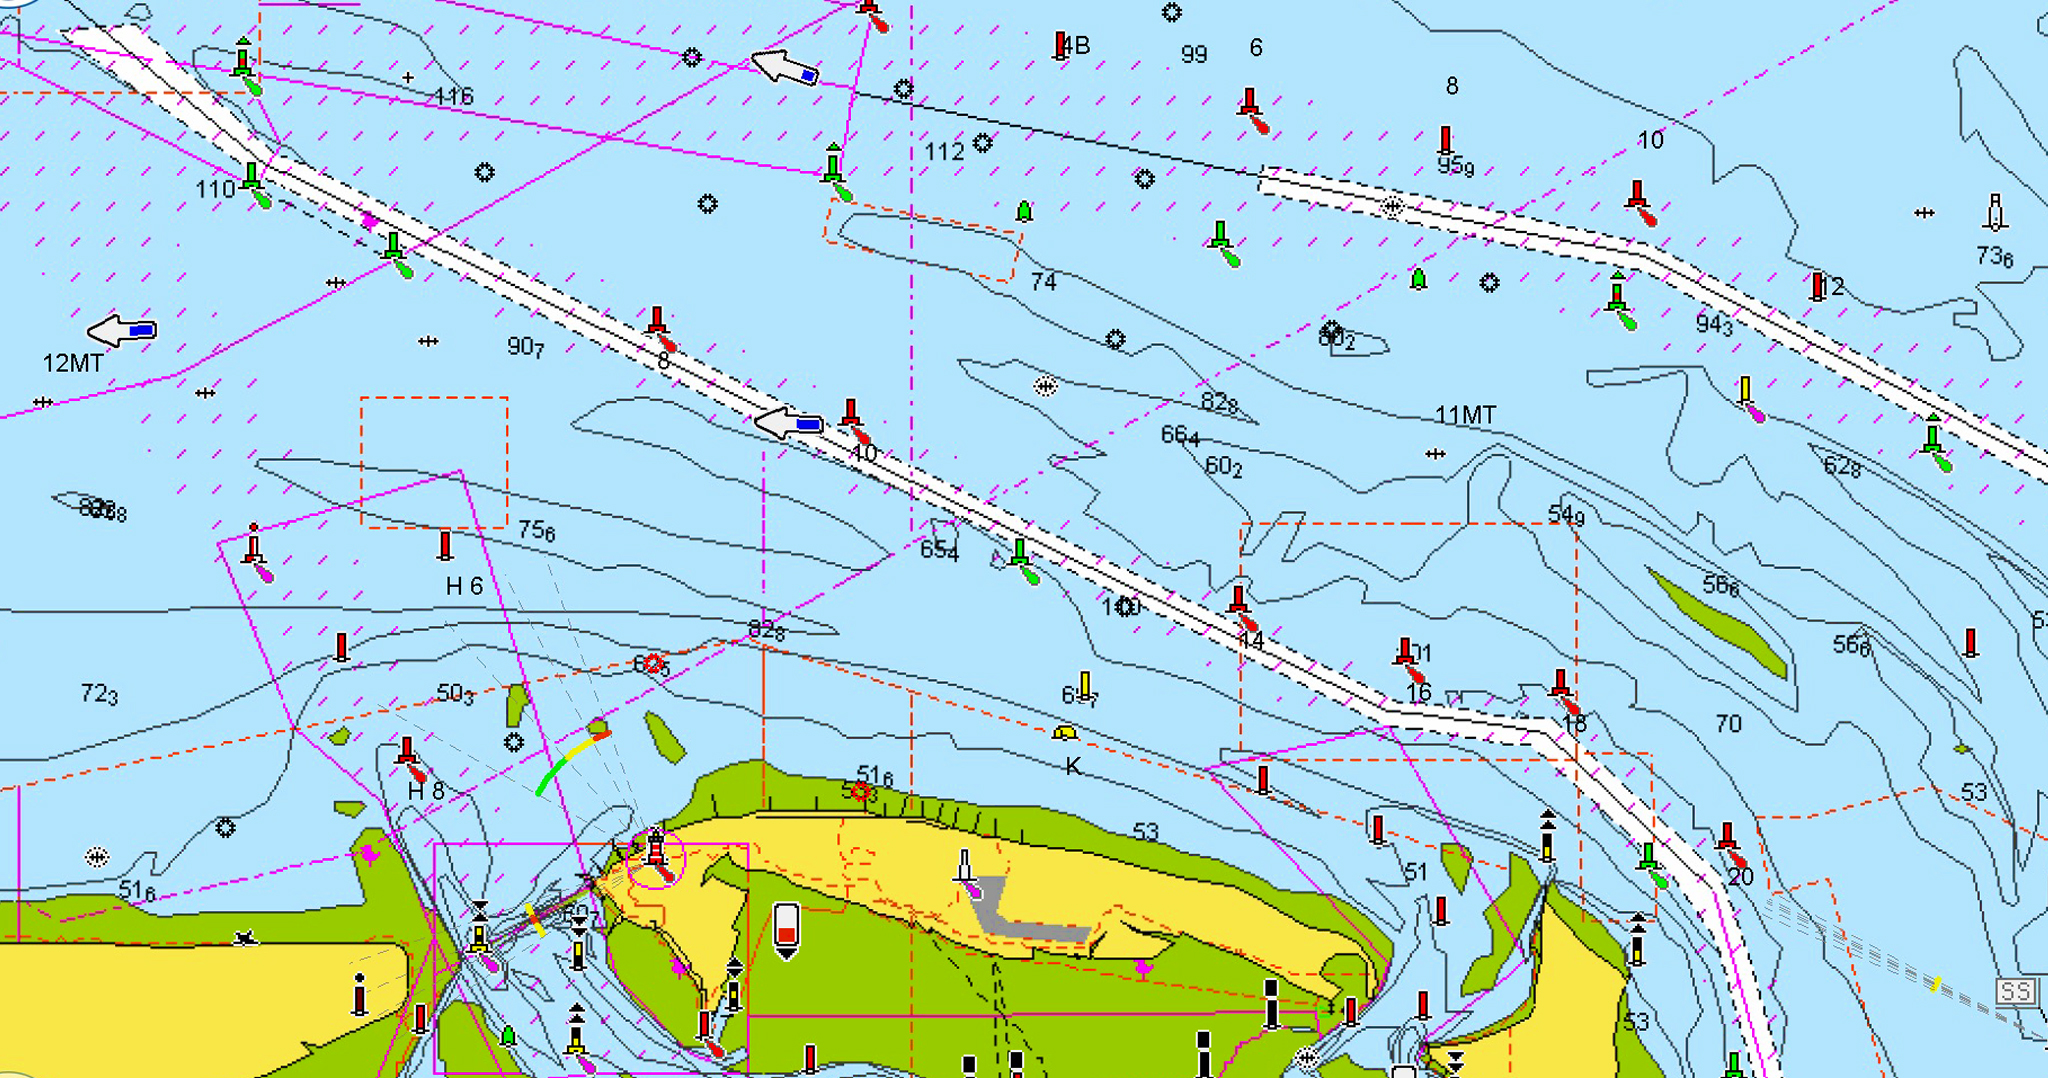 Navionics Marine Cartography Reference For Boaters We gather the data about all the spots in the usa and gradually process it and update our maps. navionics marine cartography